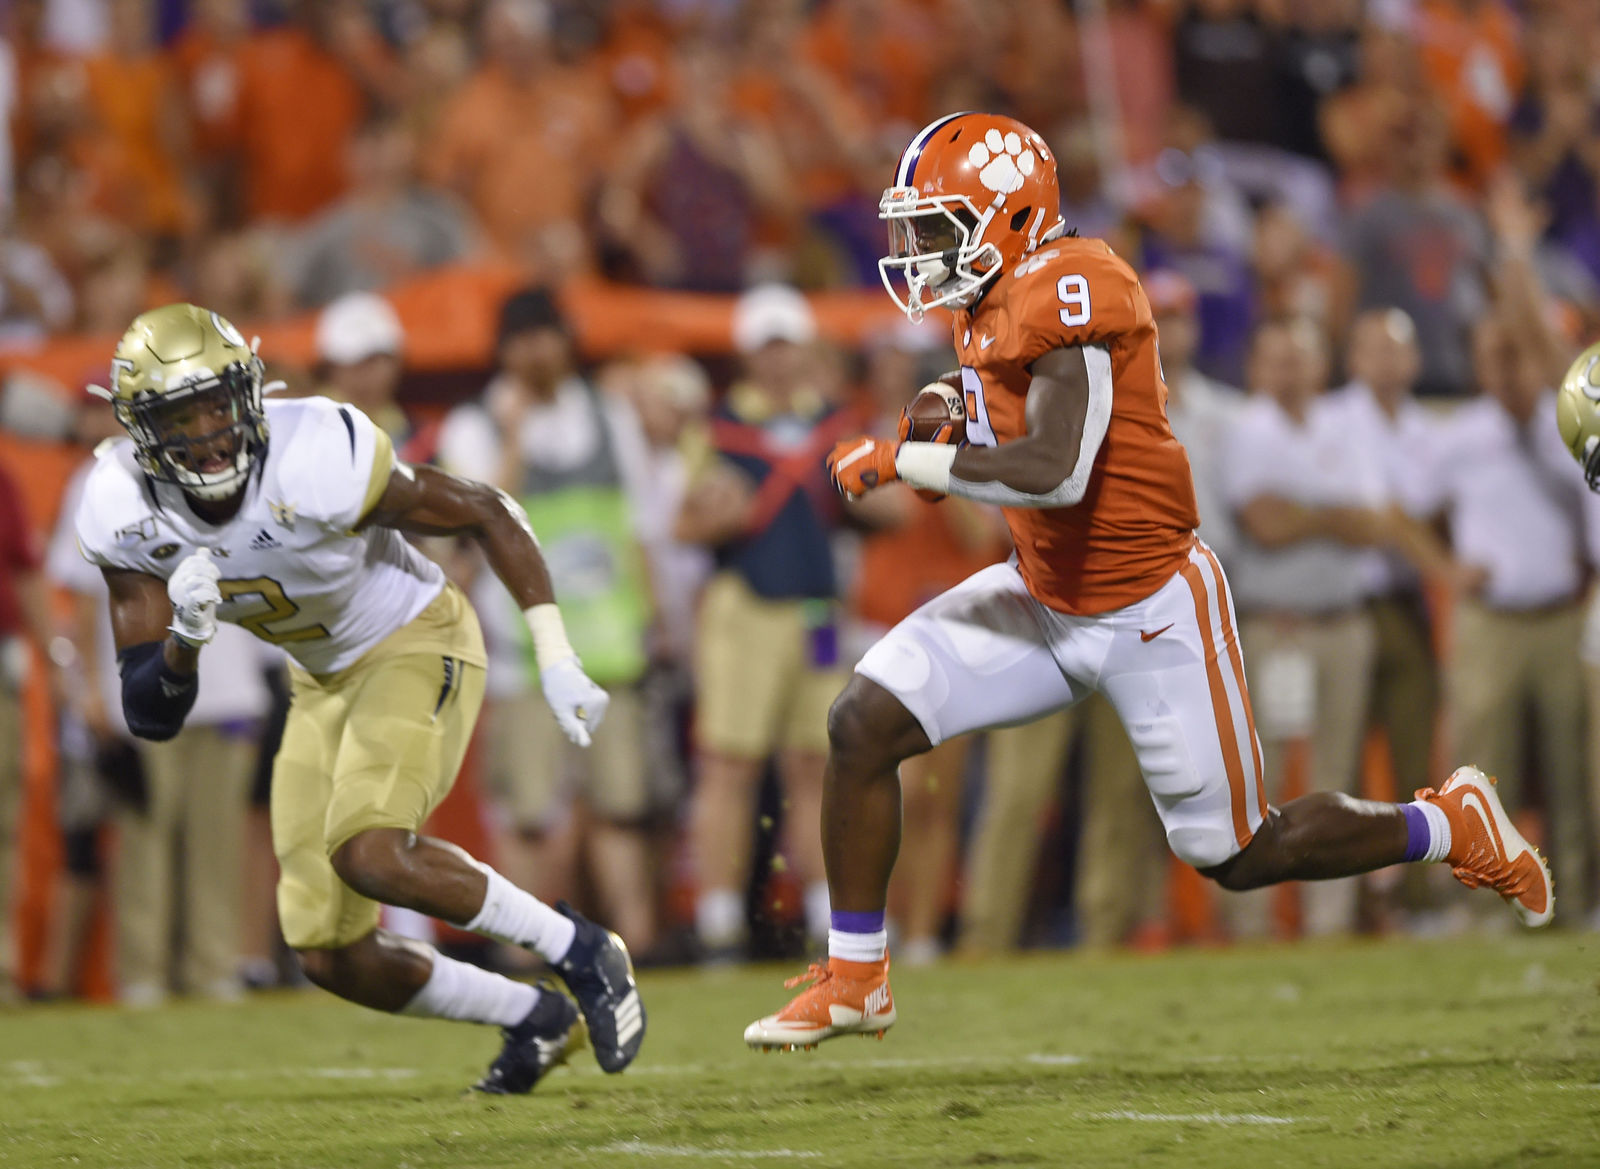 Clemson's Travis Etienne (9) out runs Georgia Tech's Tariq Carpenter to score a touchdown during the first half of an NCAA college football game Thursday, Aug. 29, 2019, in Clemson, S.C. (AP Photo/Richard Shiro)